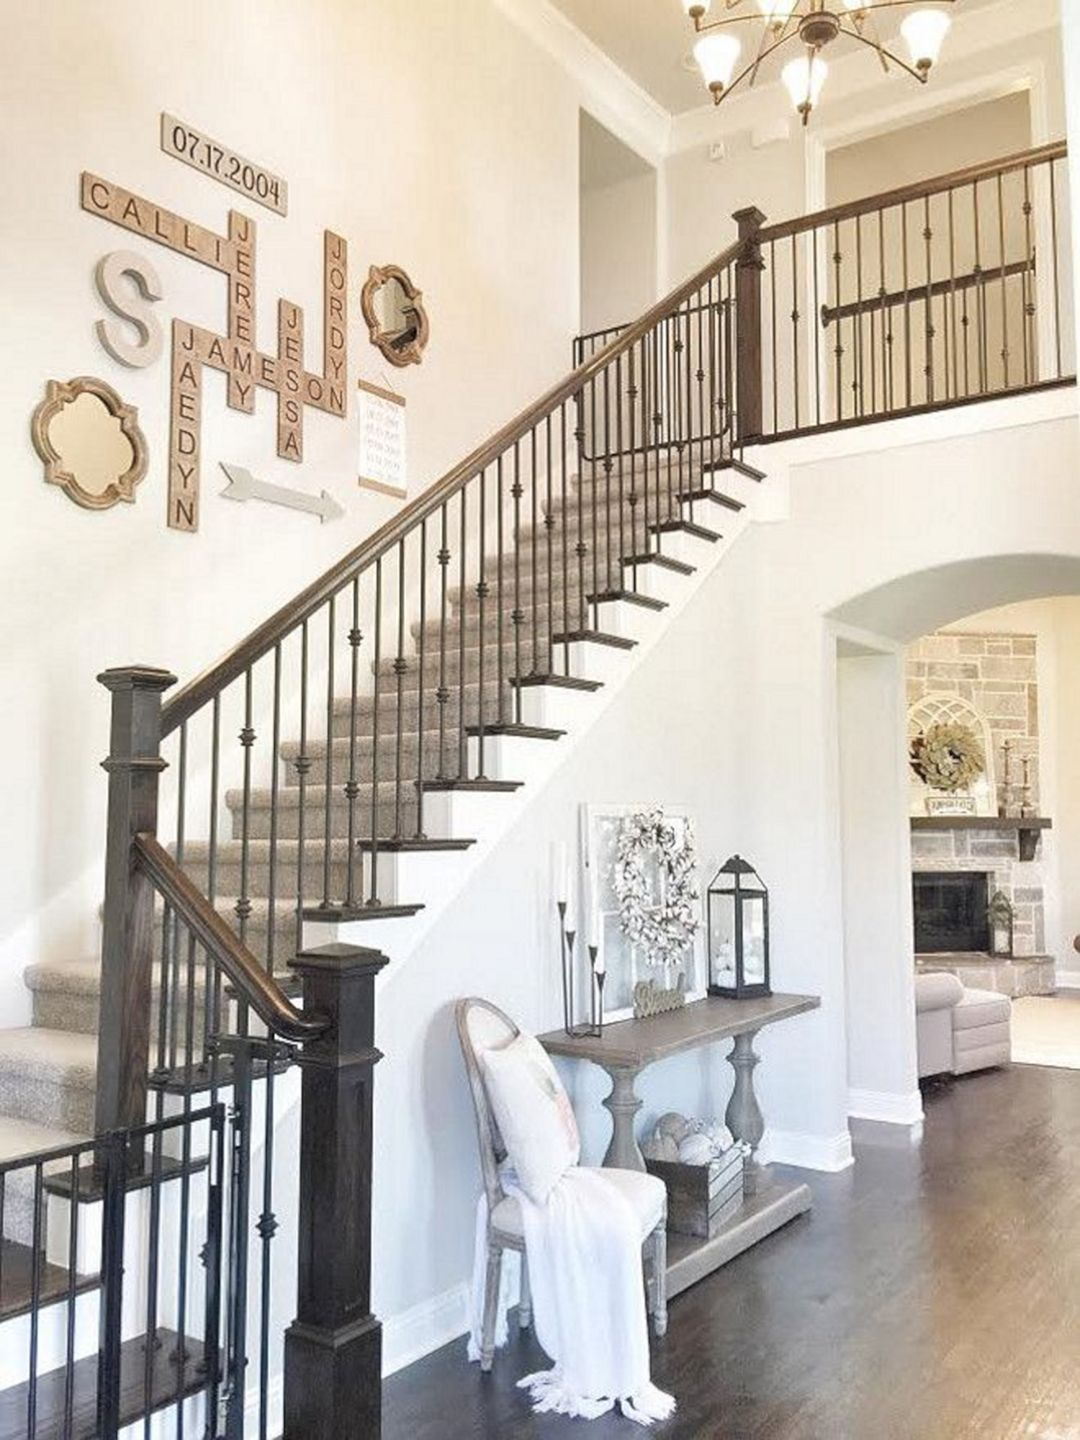 65 Awesome Arranging Pictures On A Stair Wall Ideas Home Decor